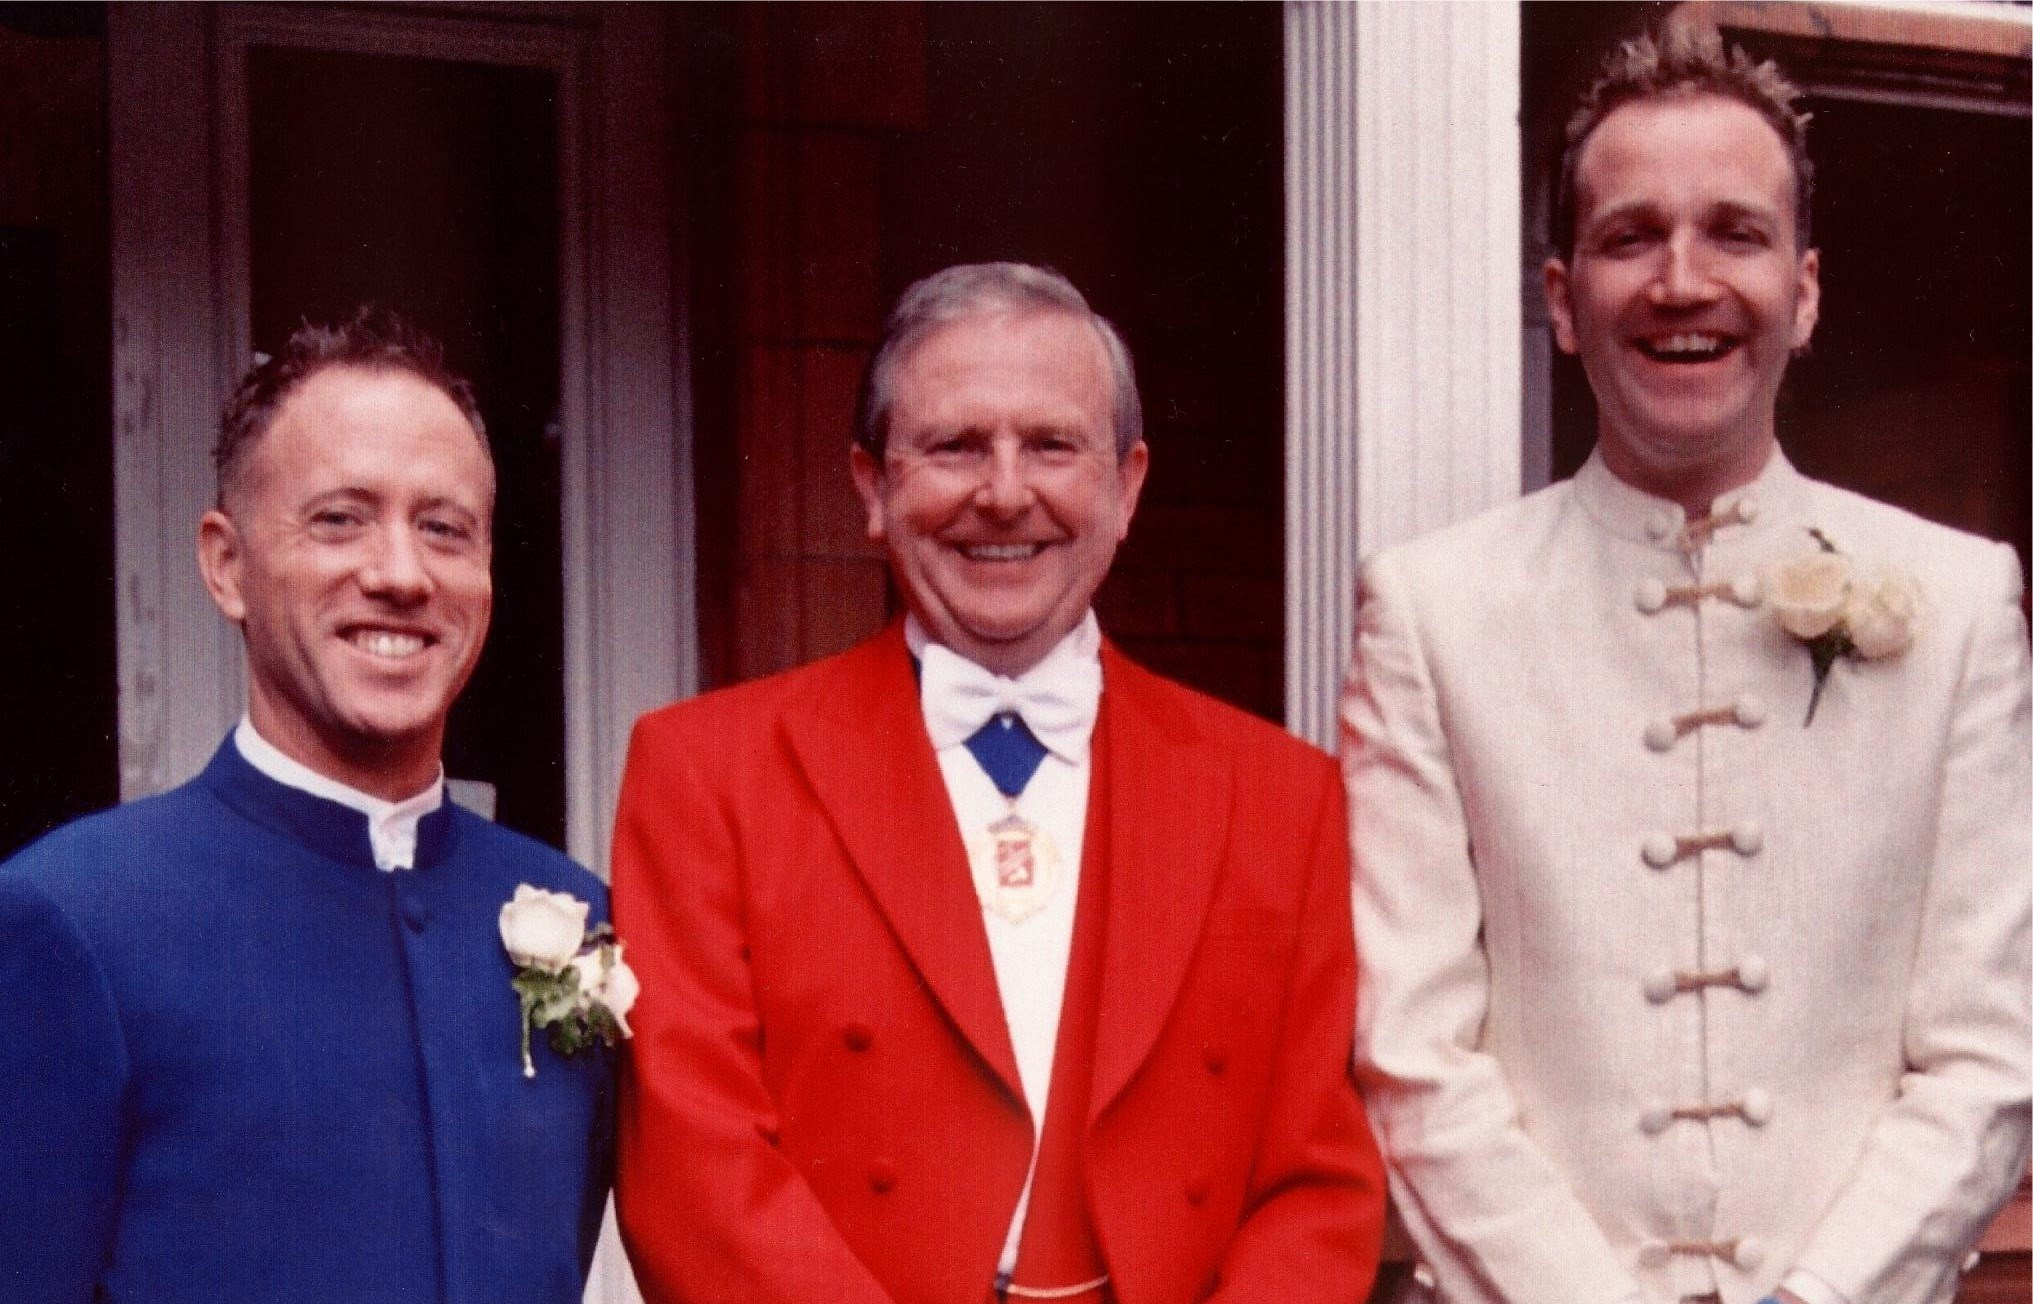 Toastmaster at a same-sex wedding